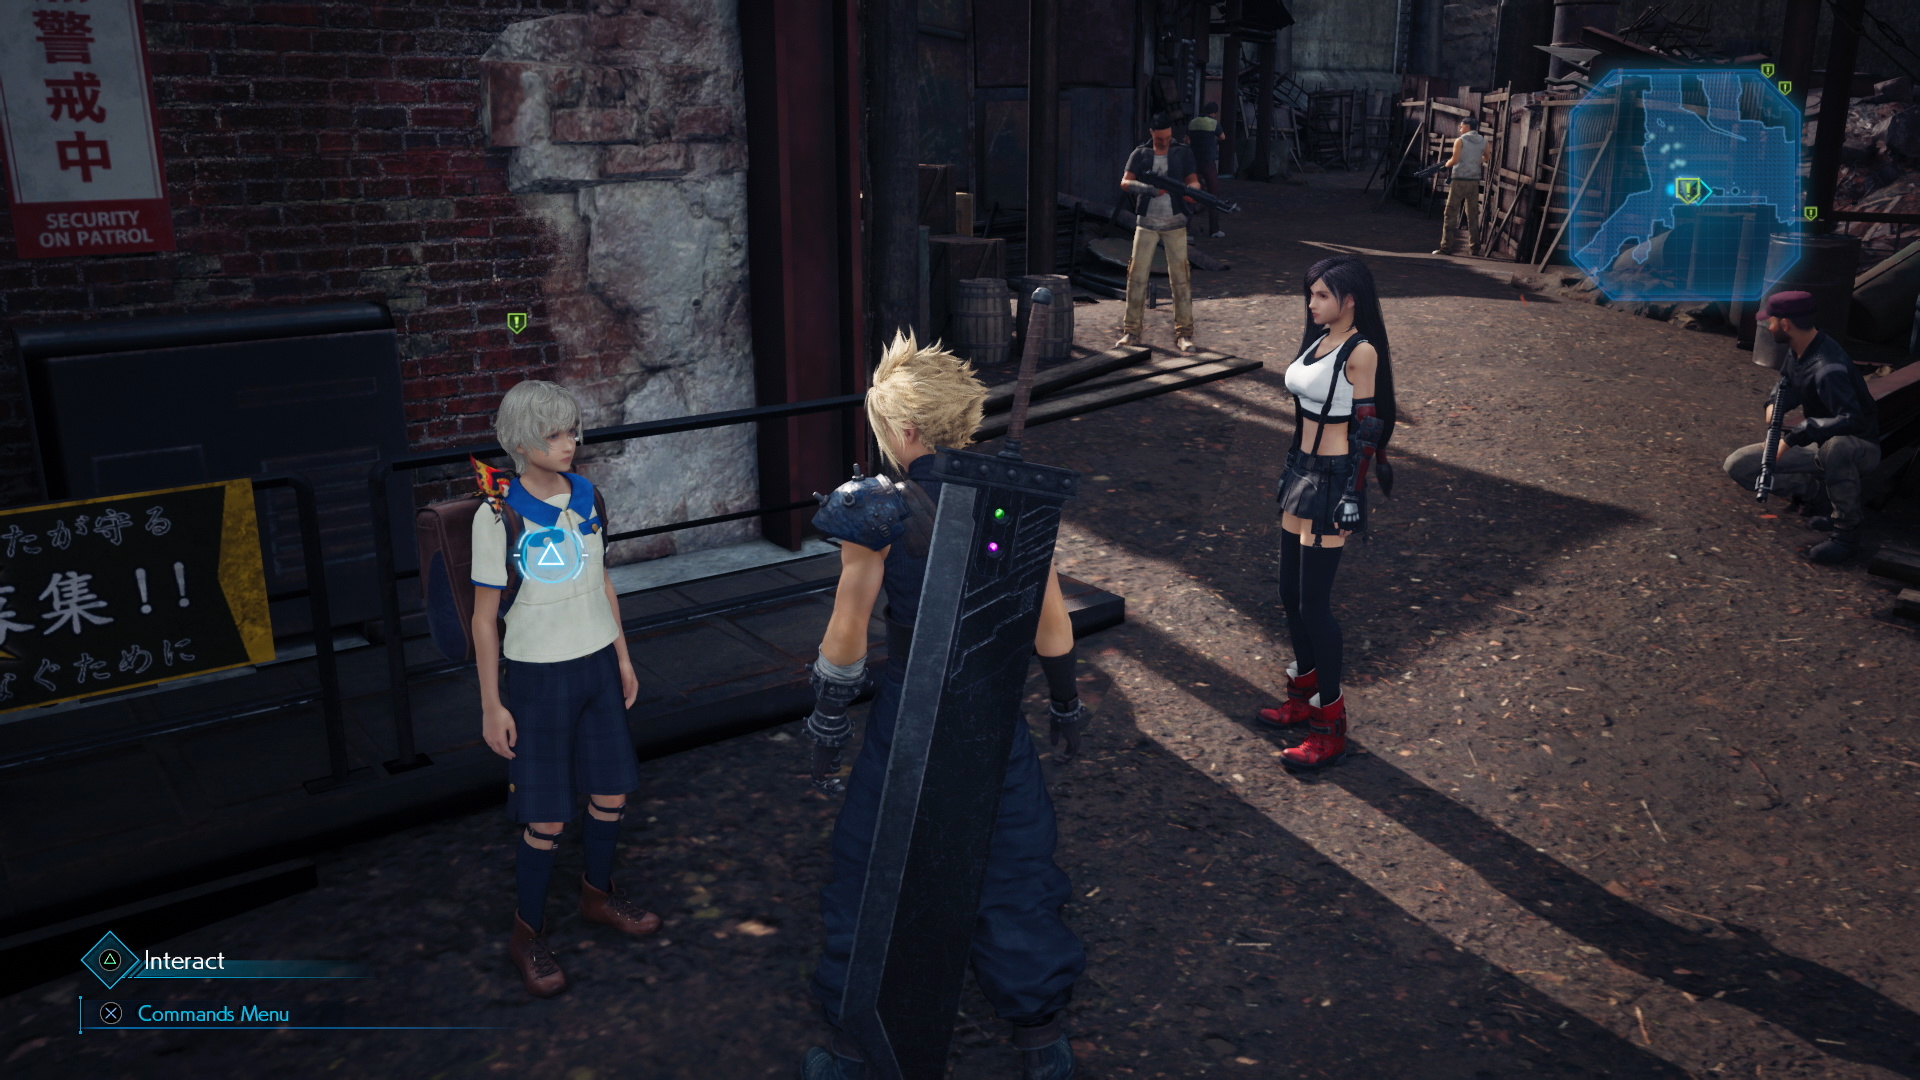 Final Fantasy 7 Remake Images Display New Characters and Quests